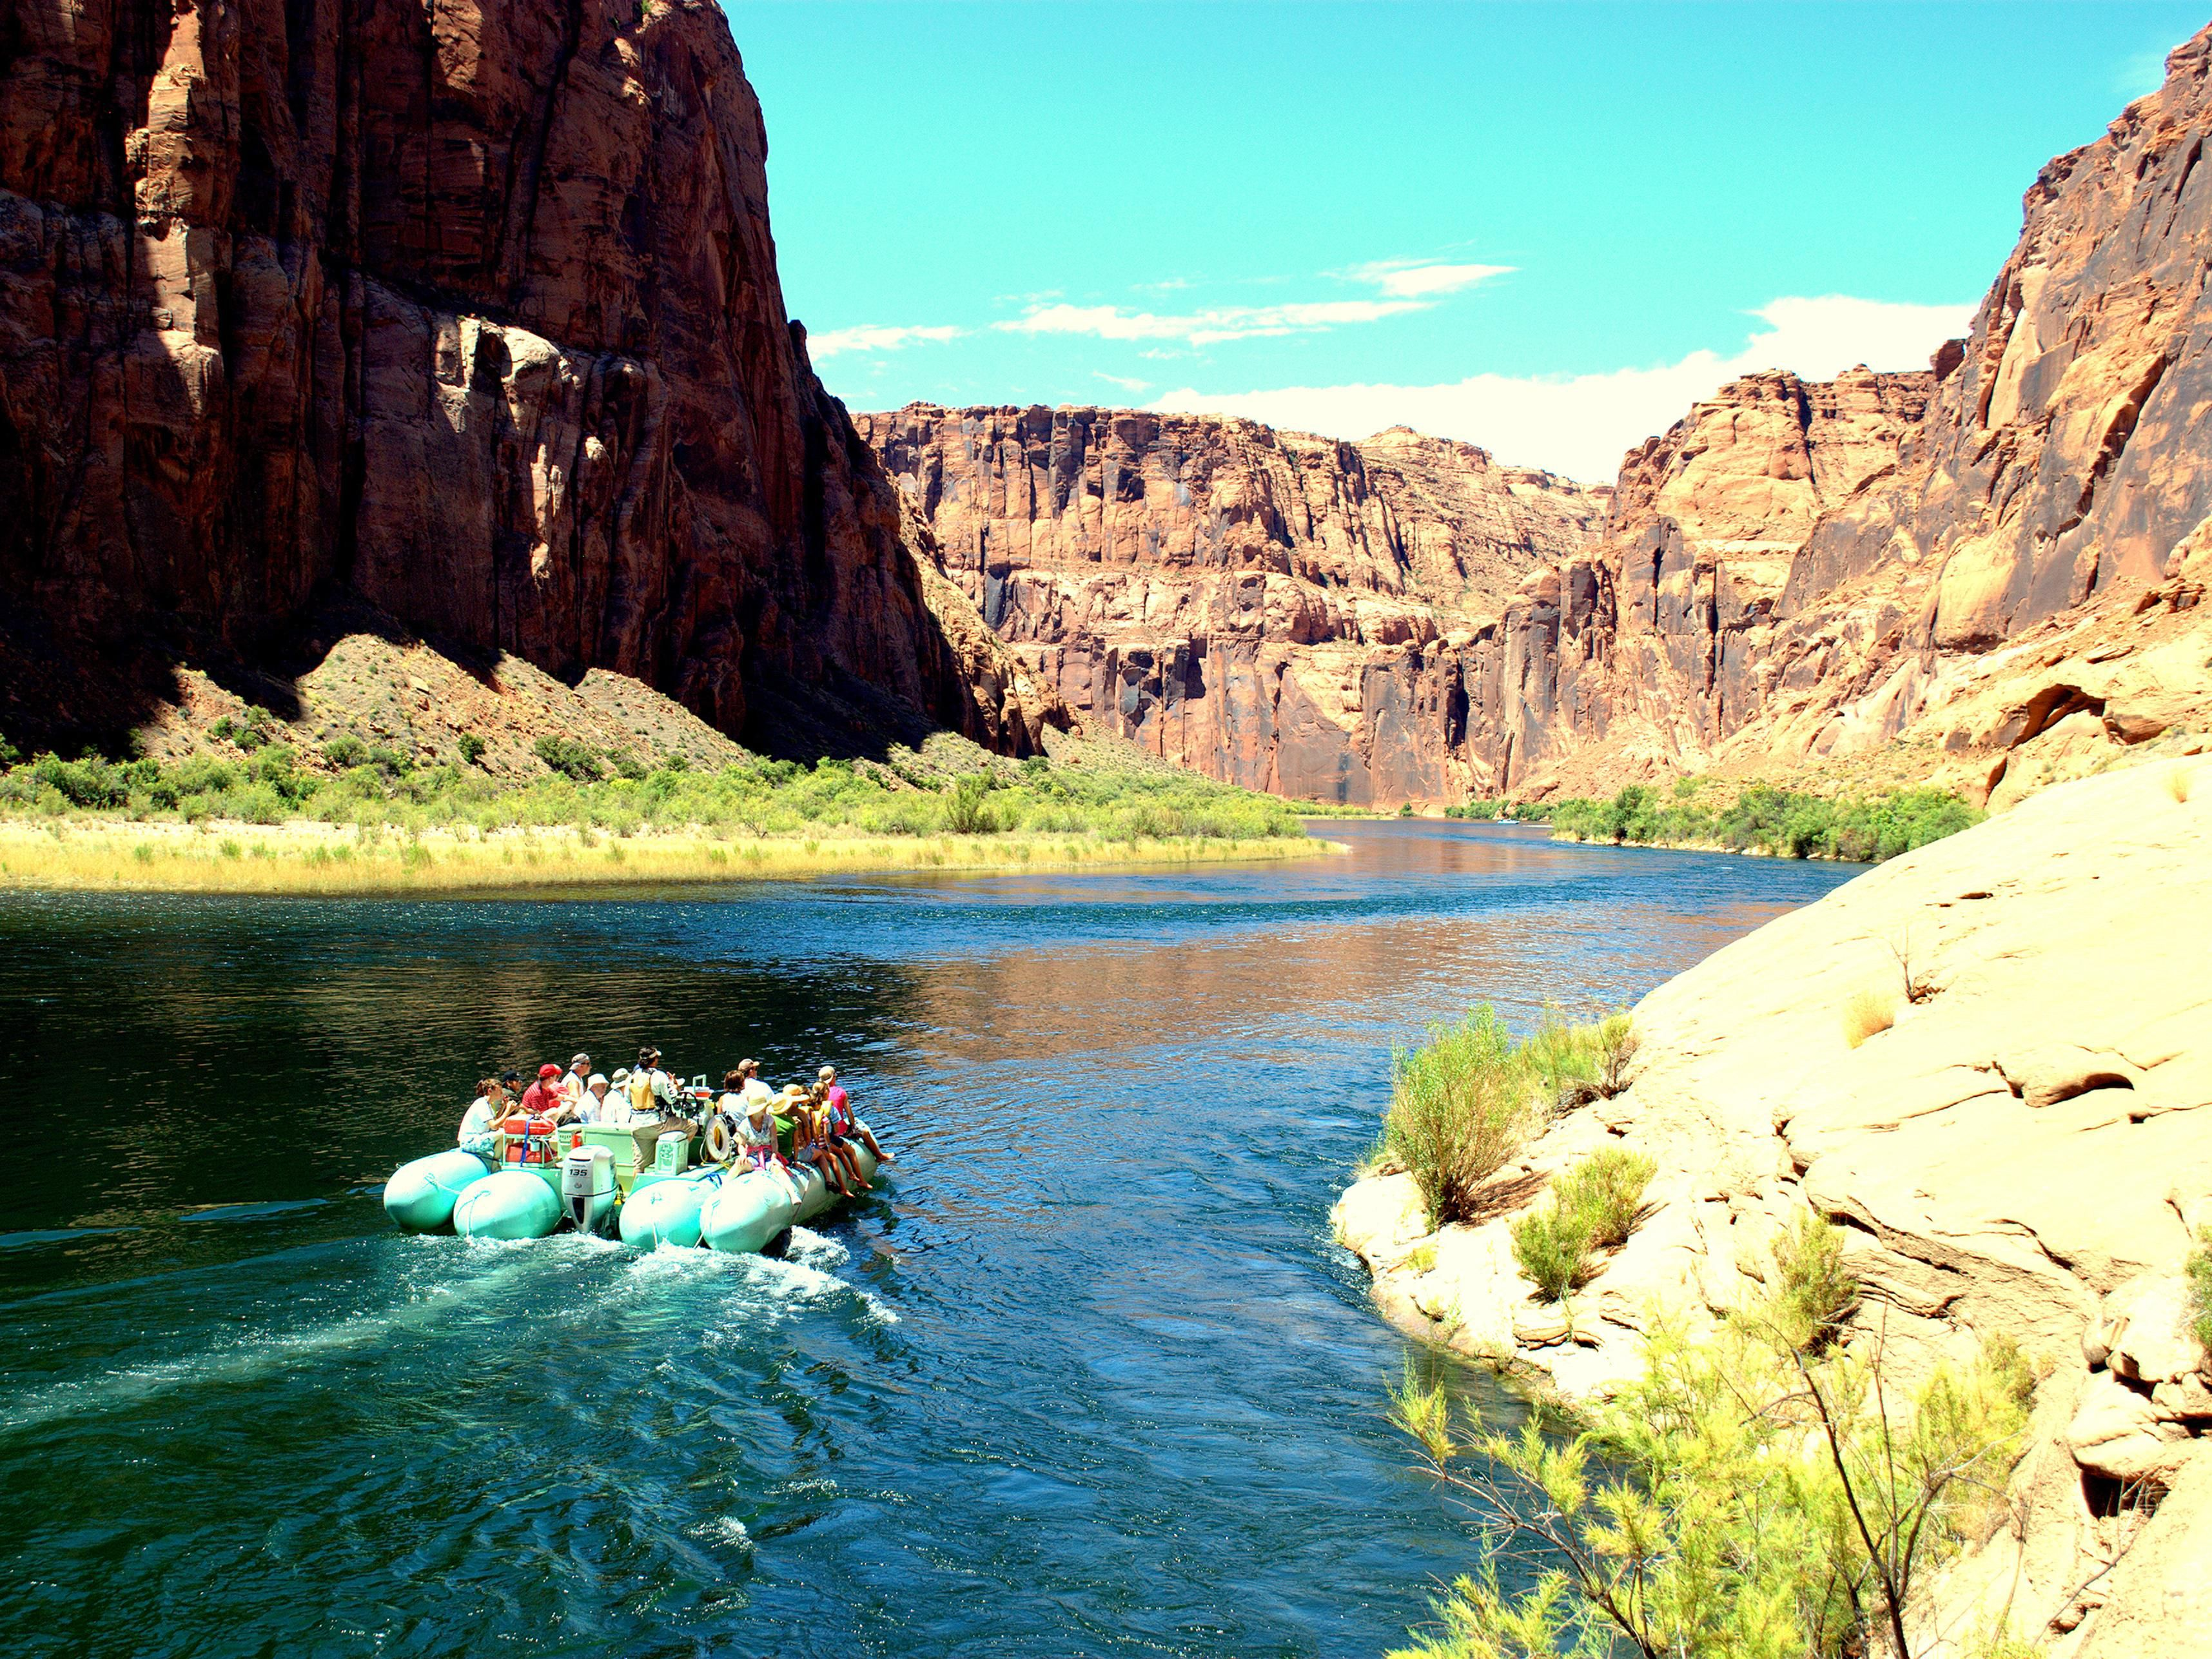 Float on one of the most dramatic rivers in the western US